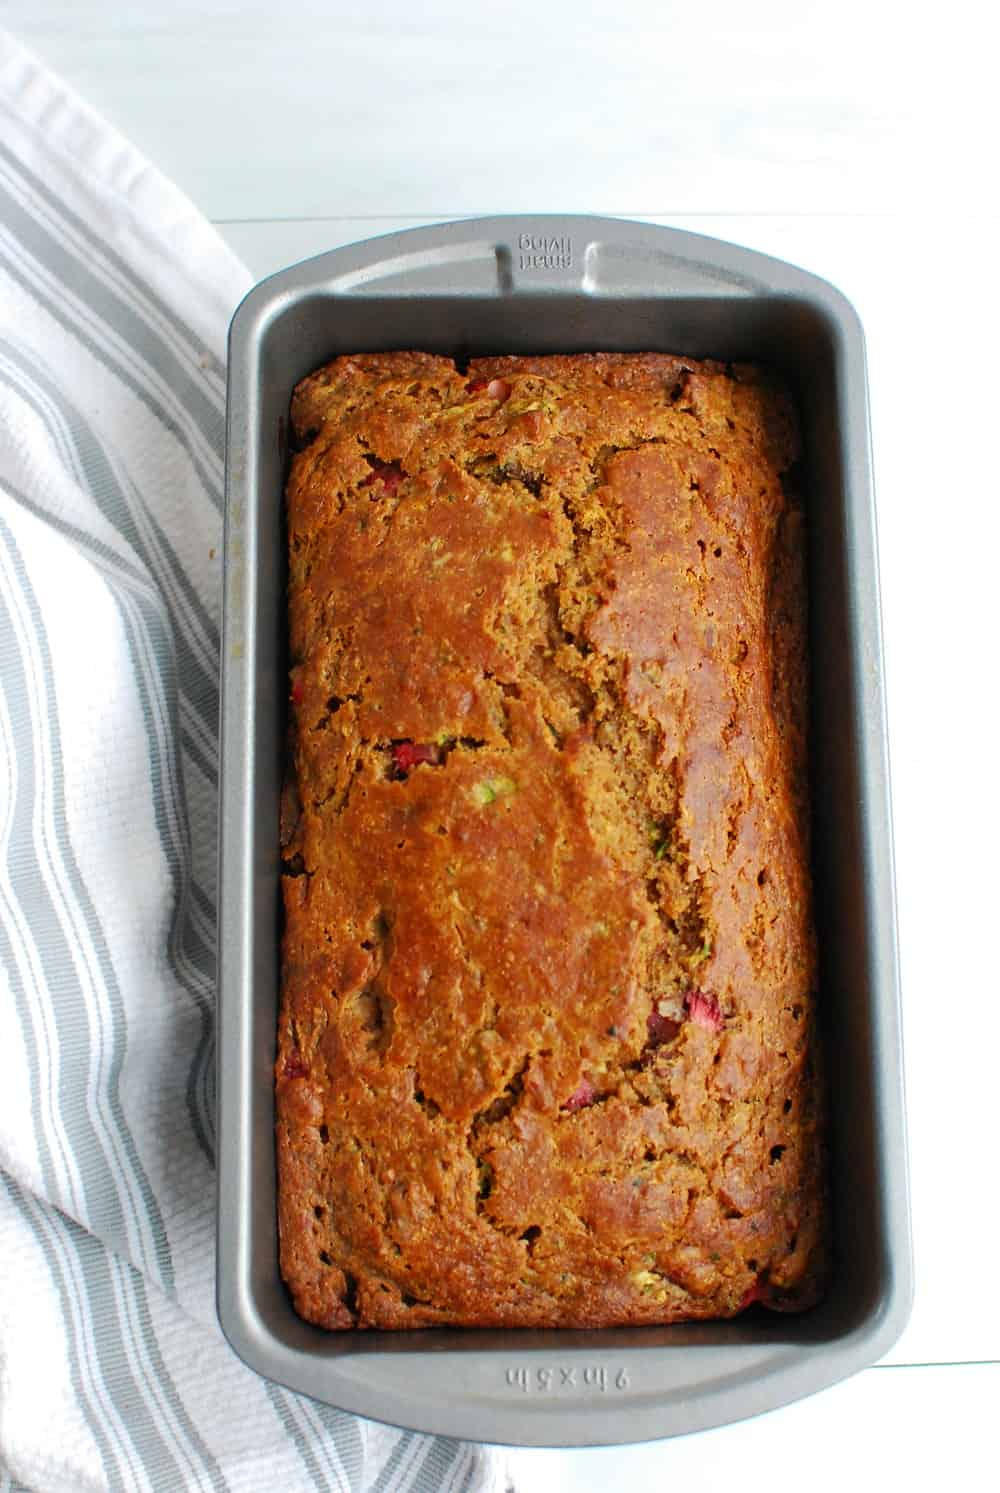 Cooked zucchini strawberry bread still in the loaf pan.